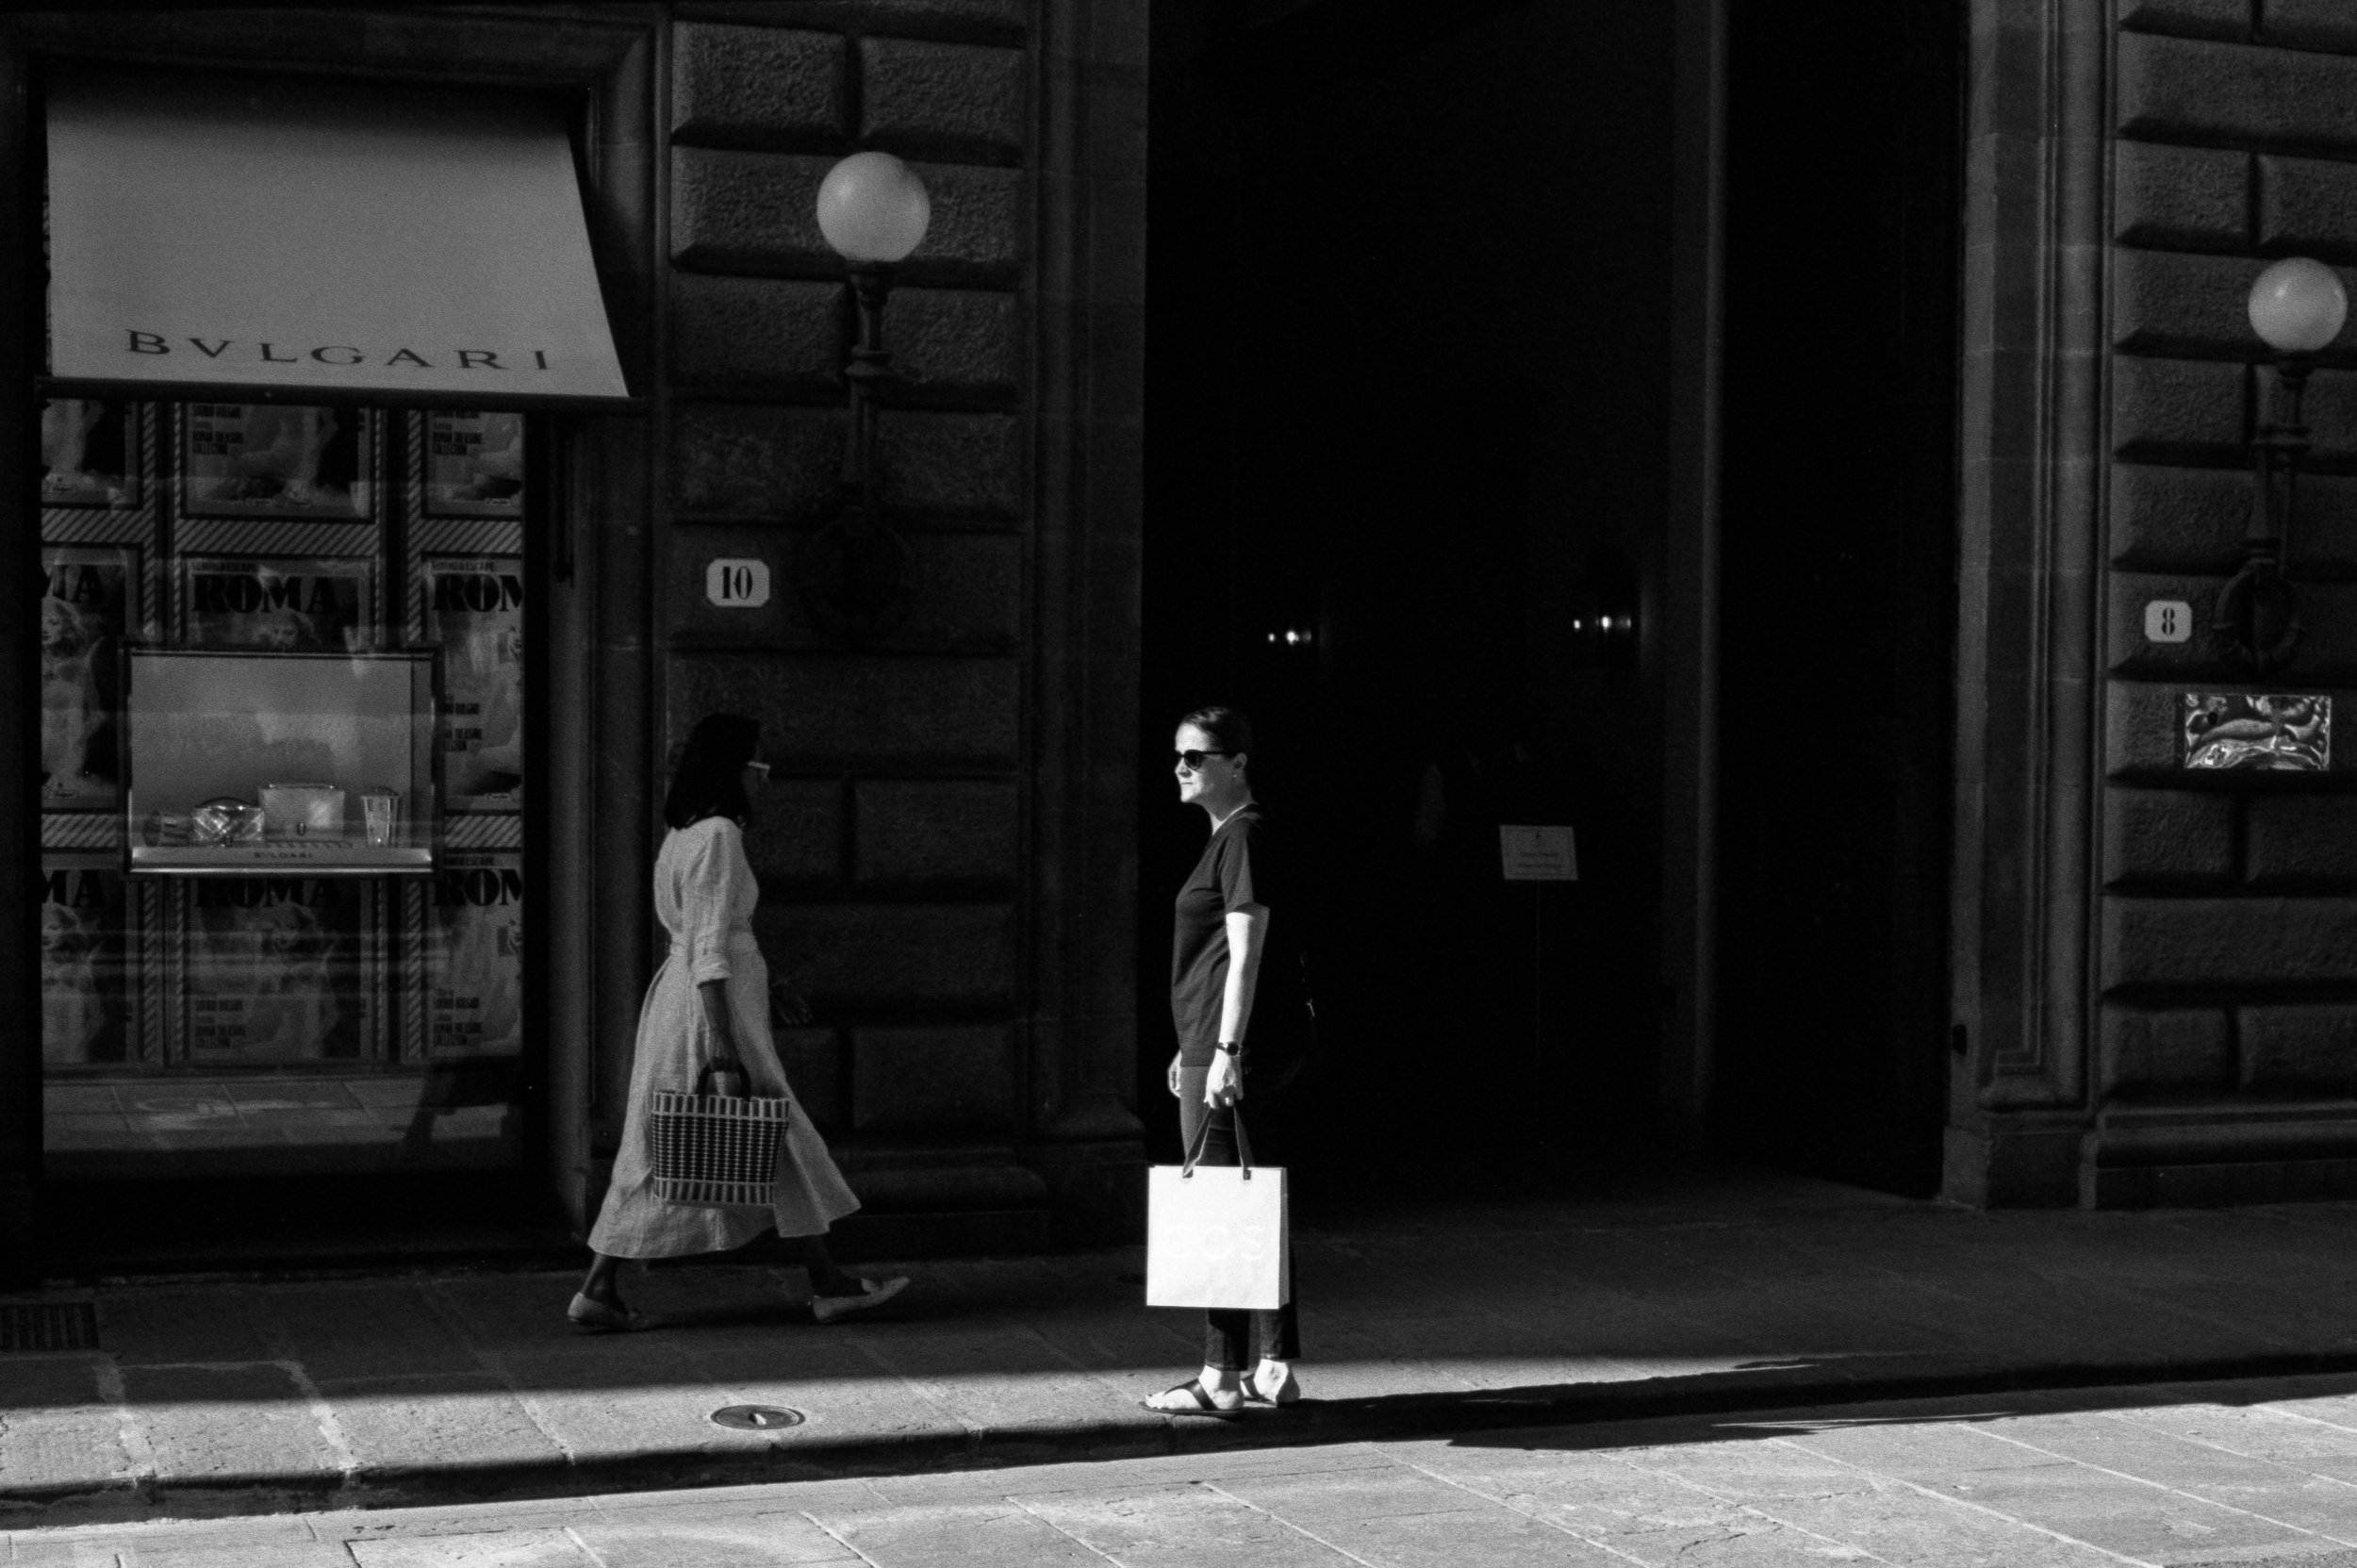 Florence. Italy. 2019.